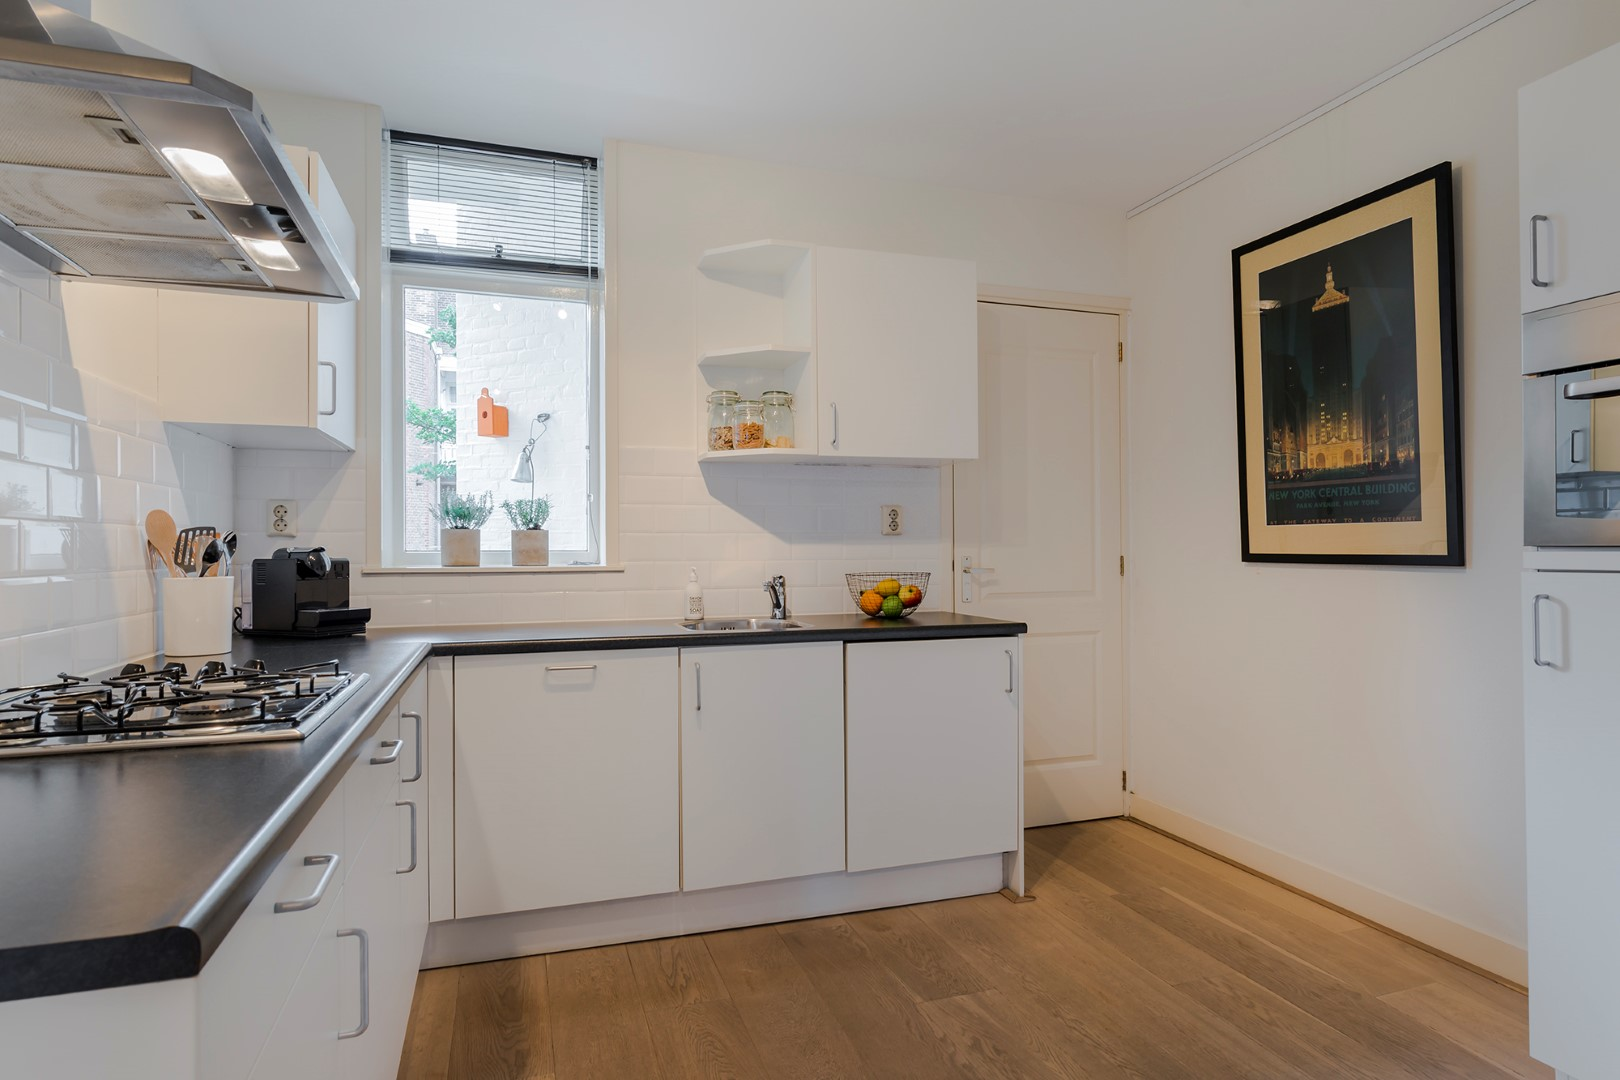 Pieter Aertszstraat 96-II, Amsterdam, Noord-Holland Nederland, 1 Bedroom Bedrooms, ,1 BathroomBathrooms,Apartment,For Rent,Pieter Aertszstraat,2,1378